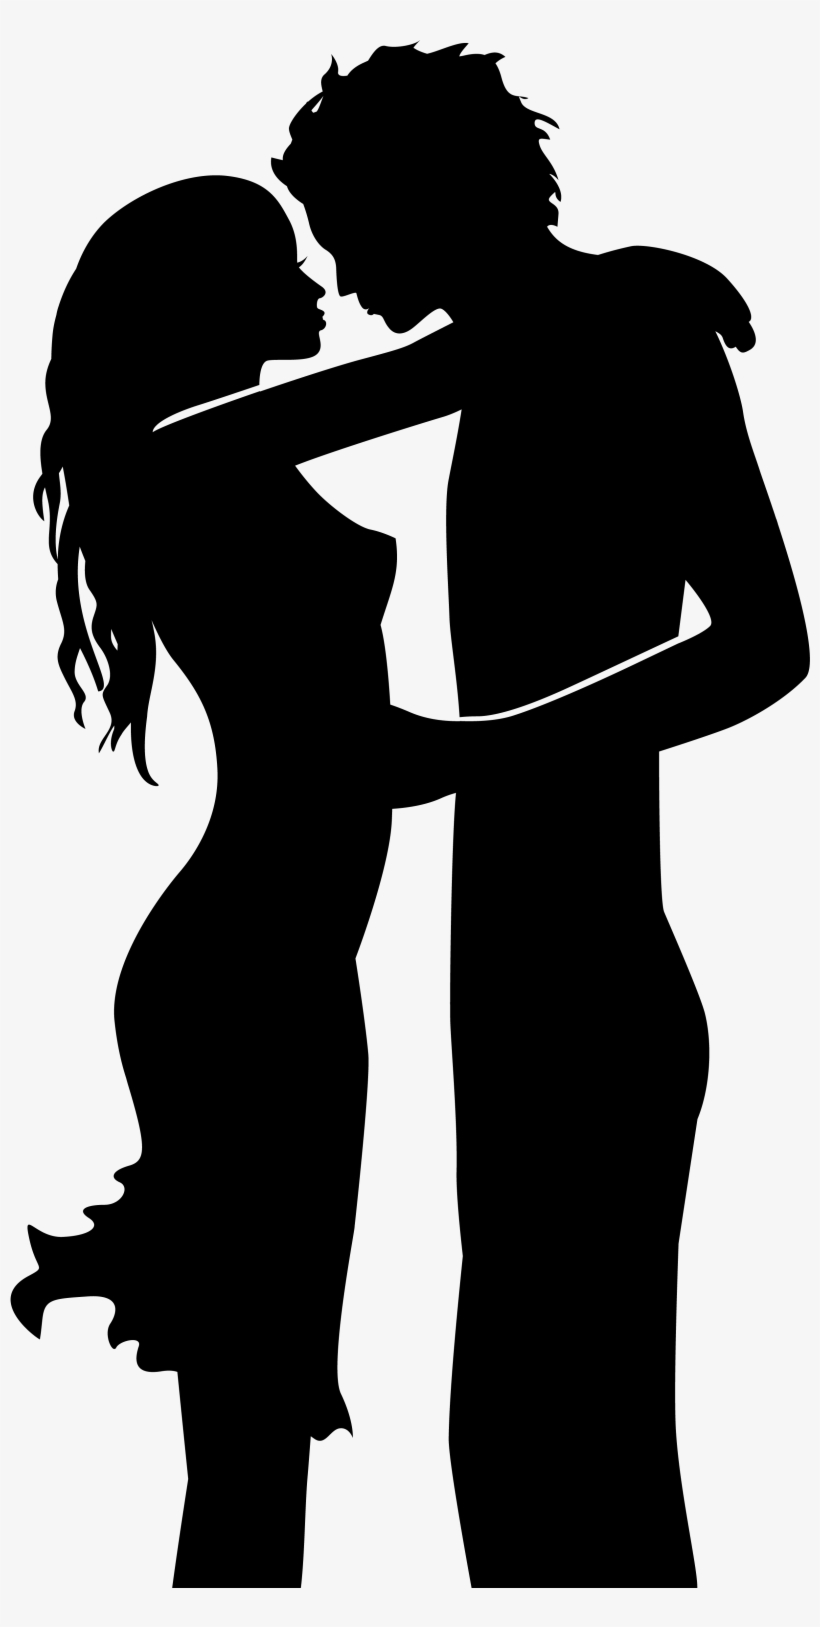 Man And Woman Silhouette, Scrapbook Images, Web Images, - Man And Woman Silhouette Png, transparent png #214907